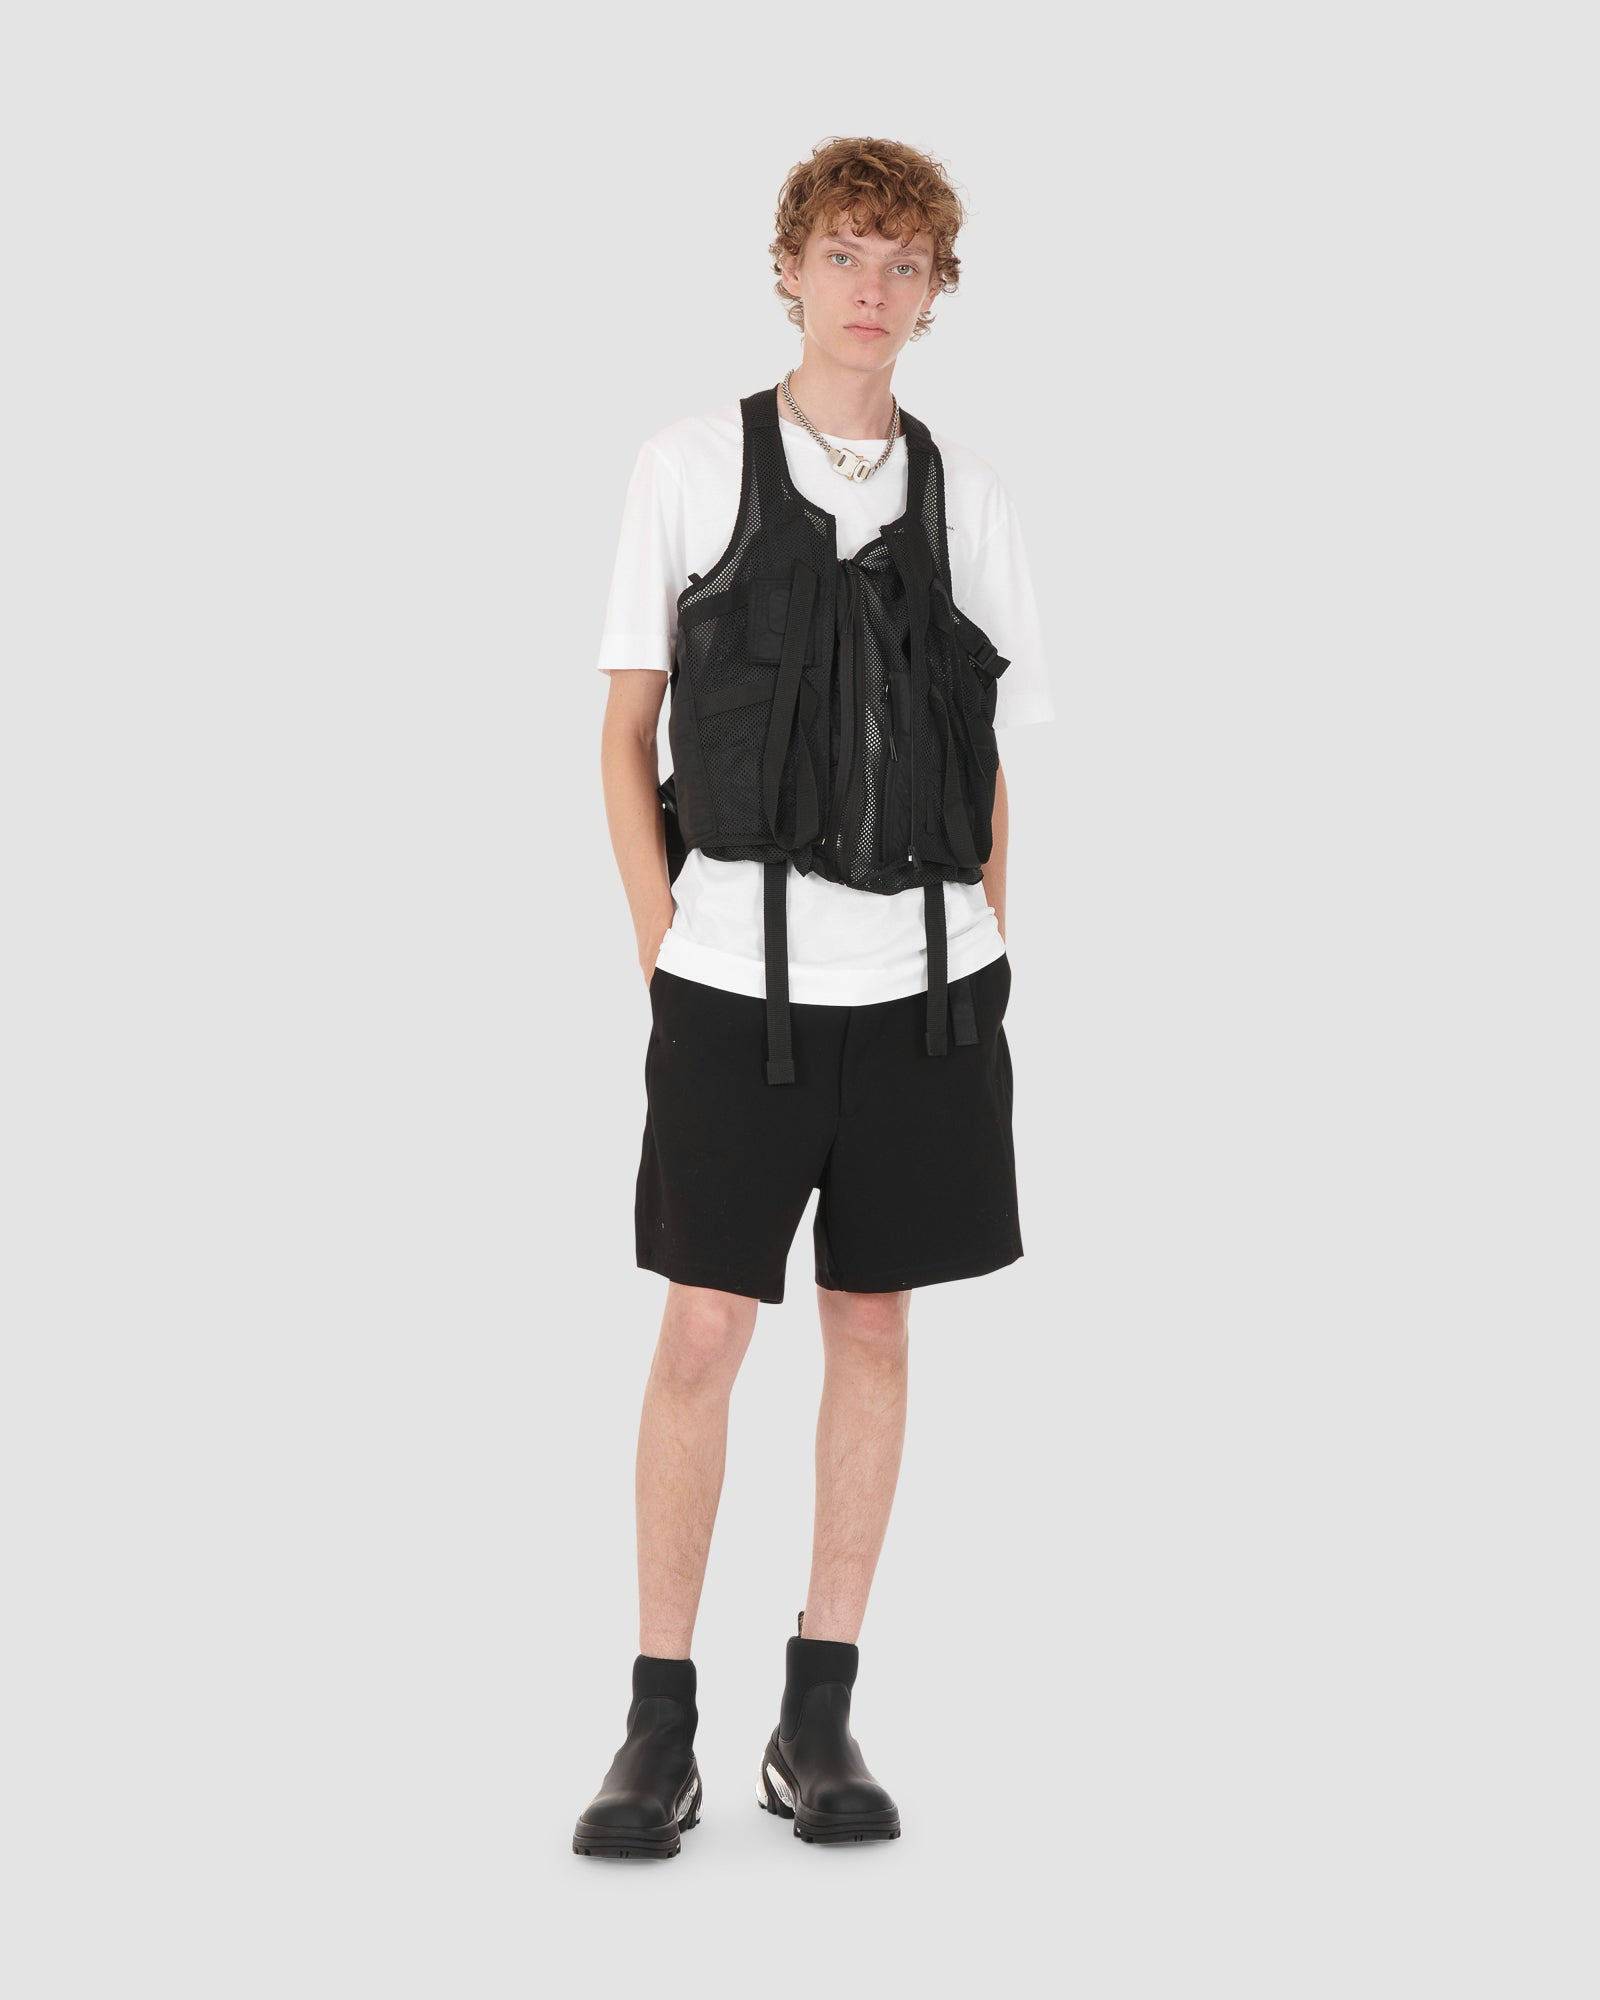 1017 ALYX 9SM | TACTICAL VEST | Outerwear | Black, Google Shopping, Man, MEN, Outerwear, S20, S20 Drop II